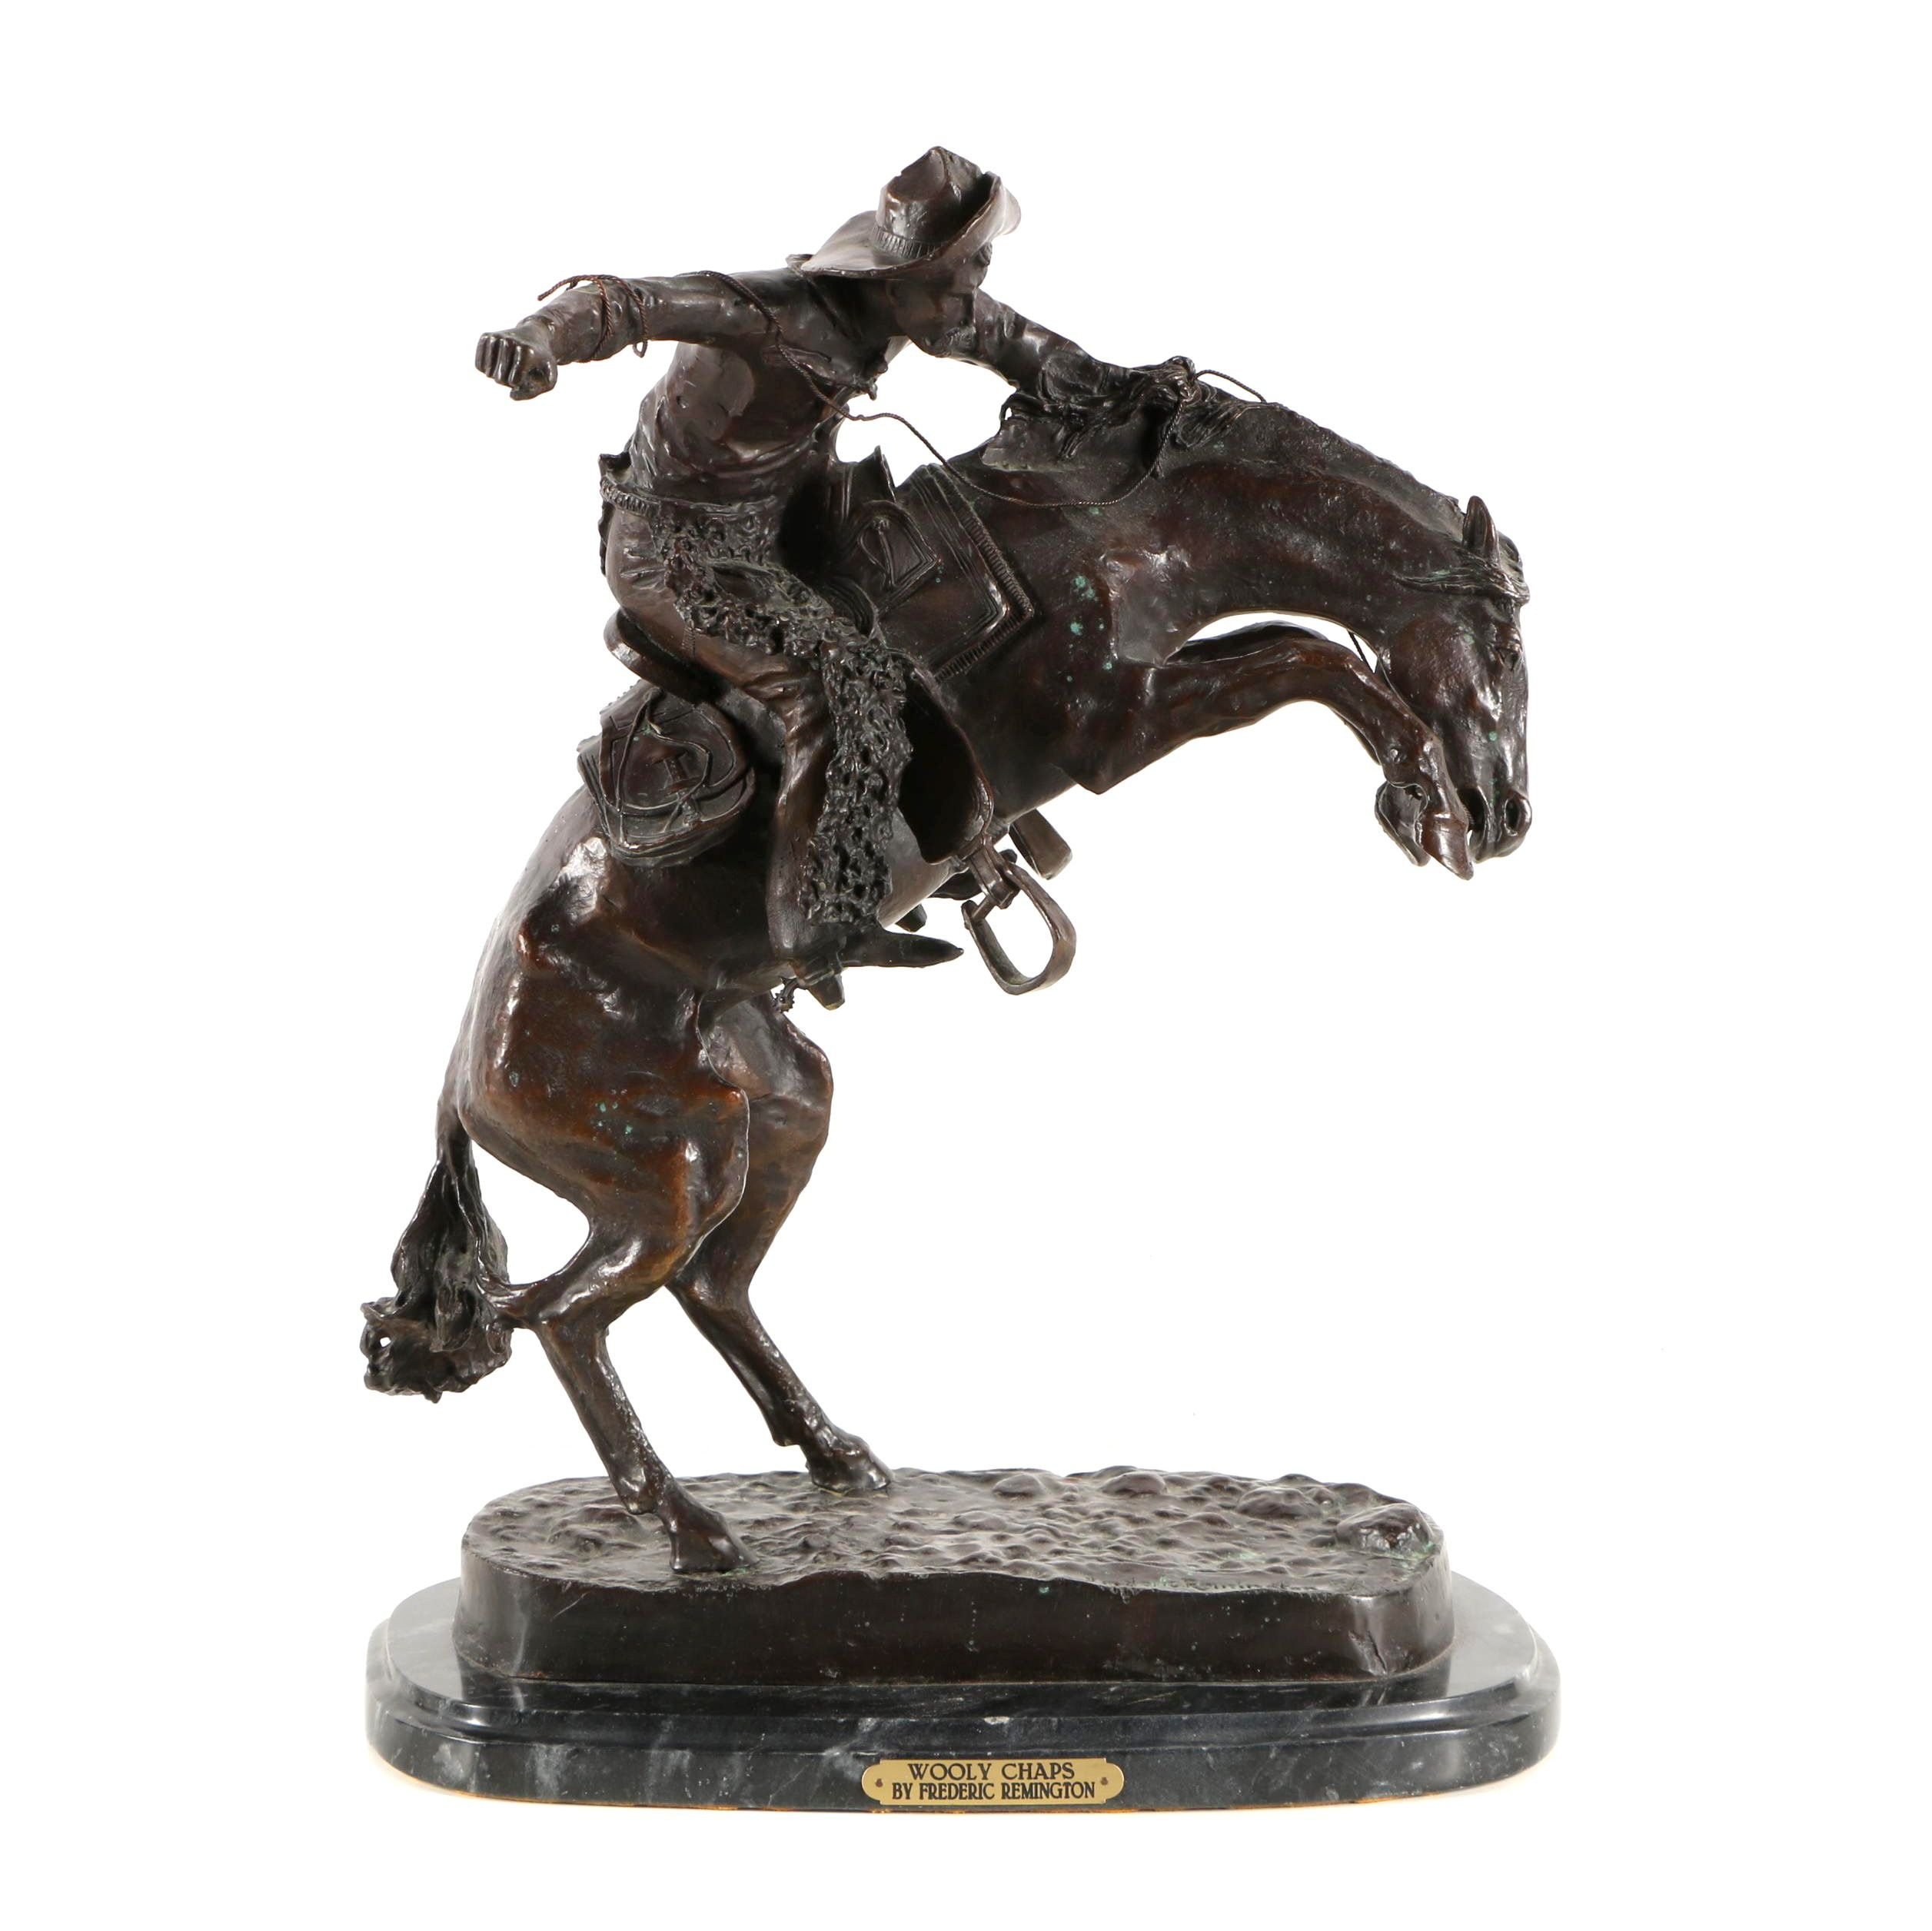 """Limited Edition Brass Sculpture After Frederic Remington's """"Wooly Chaps"""""""